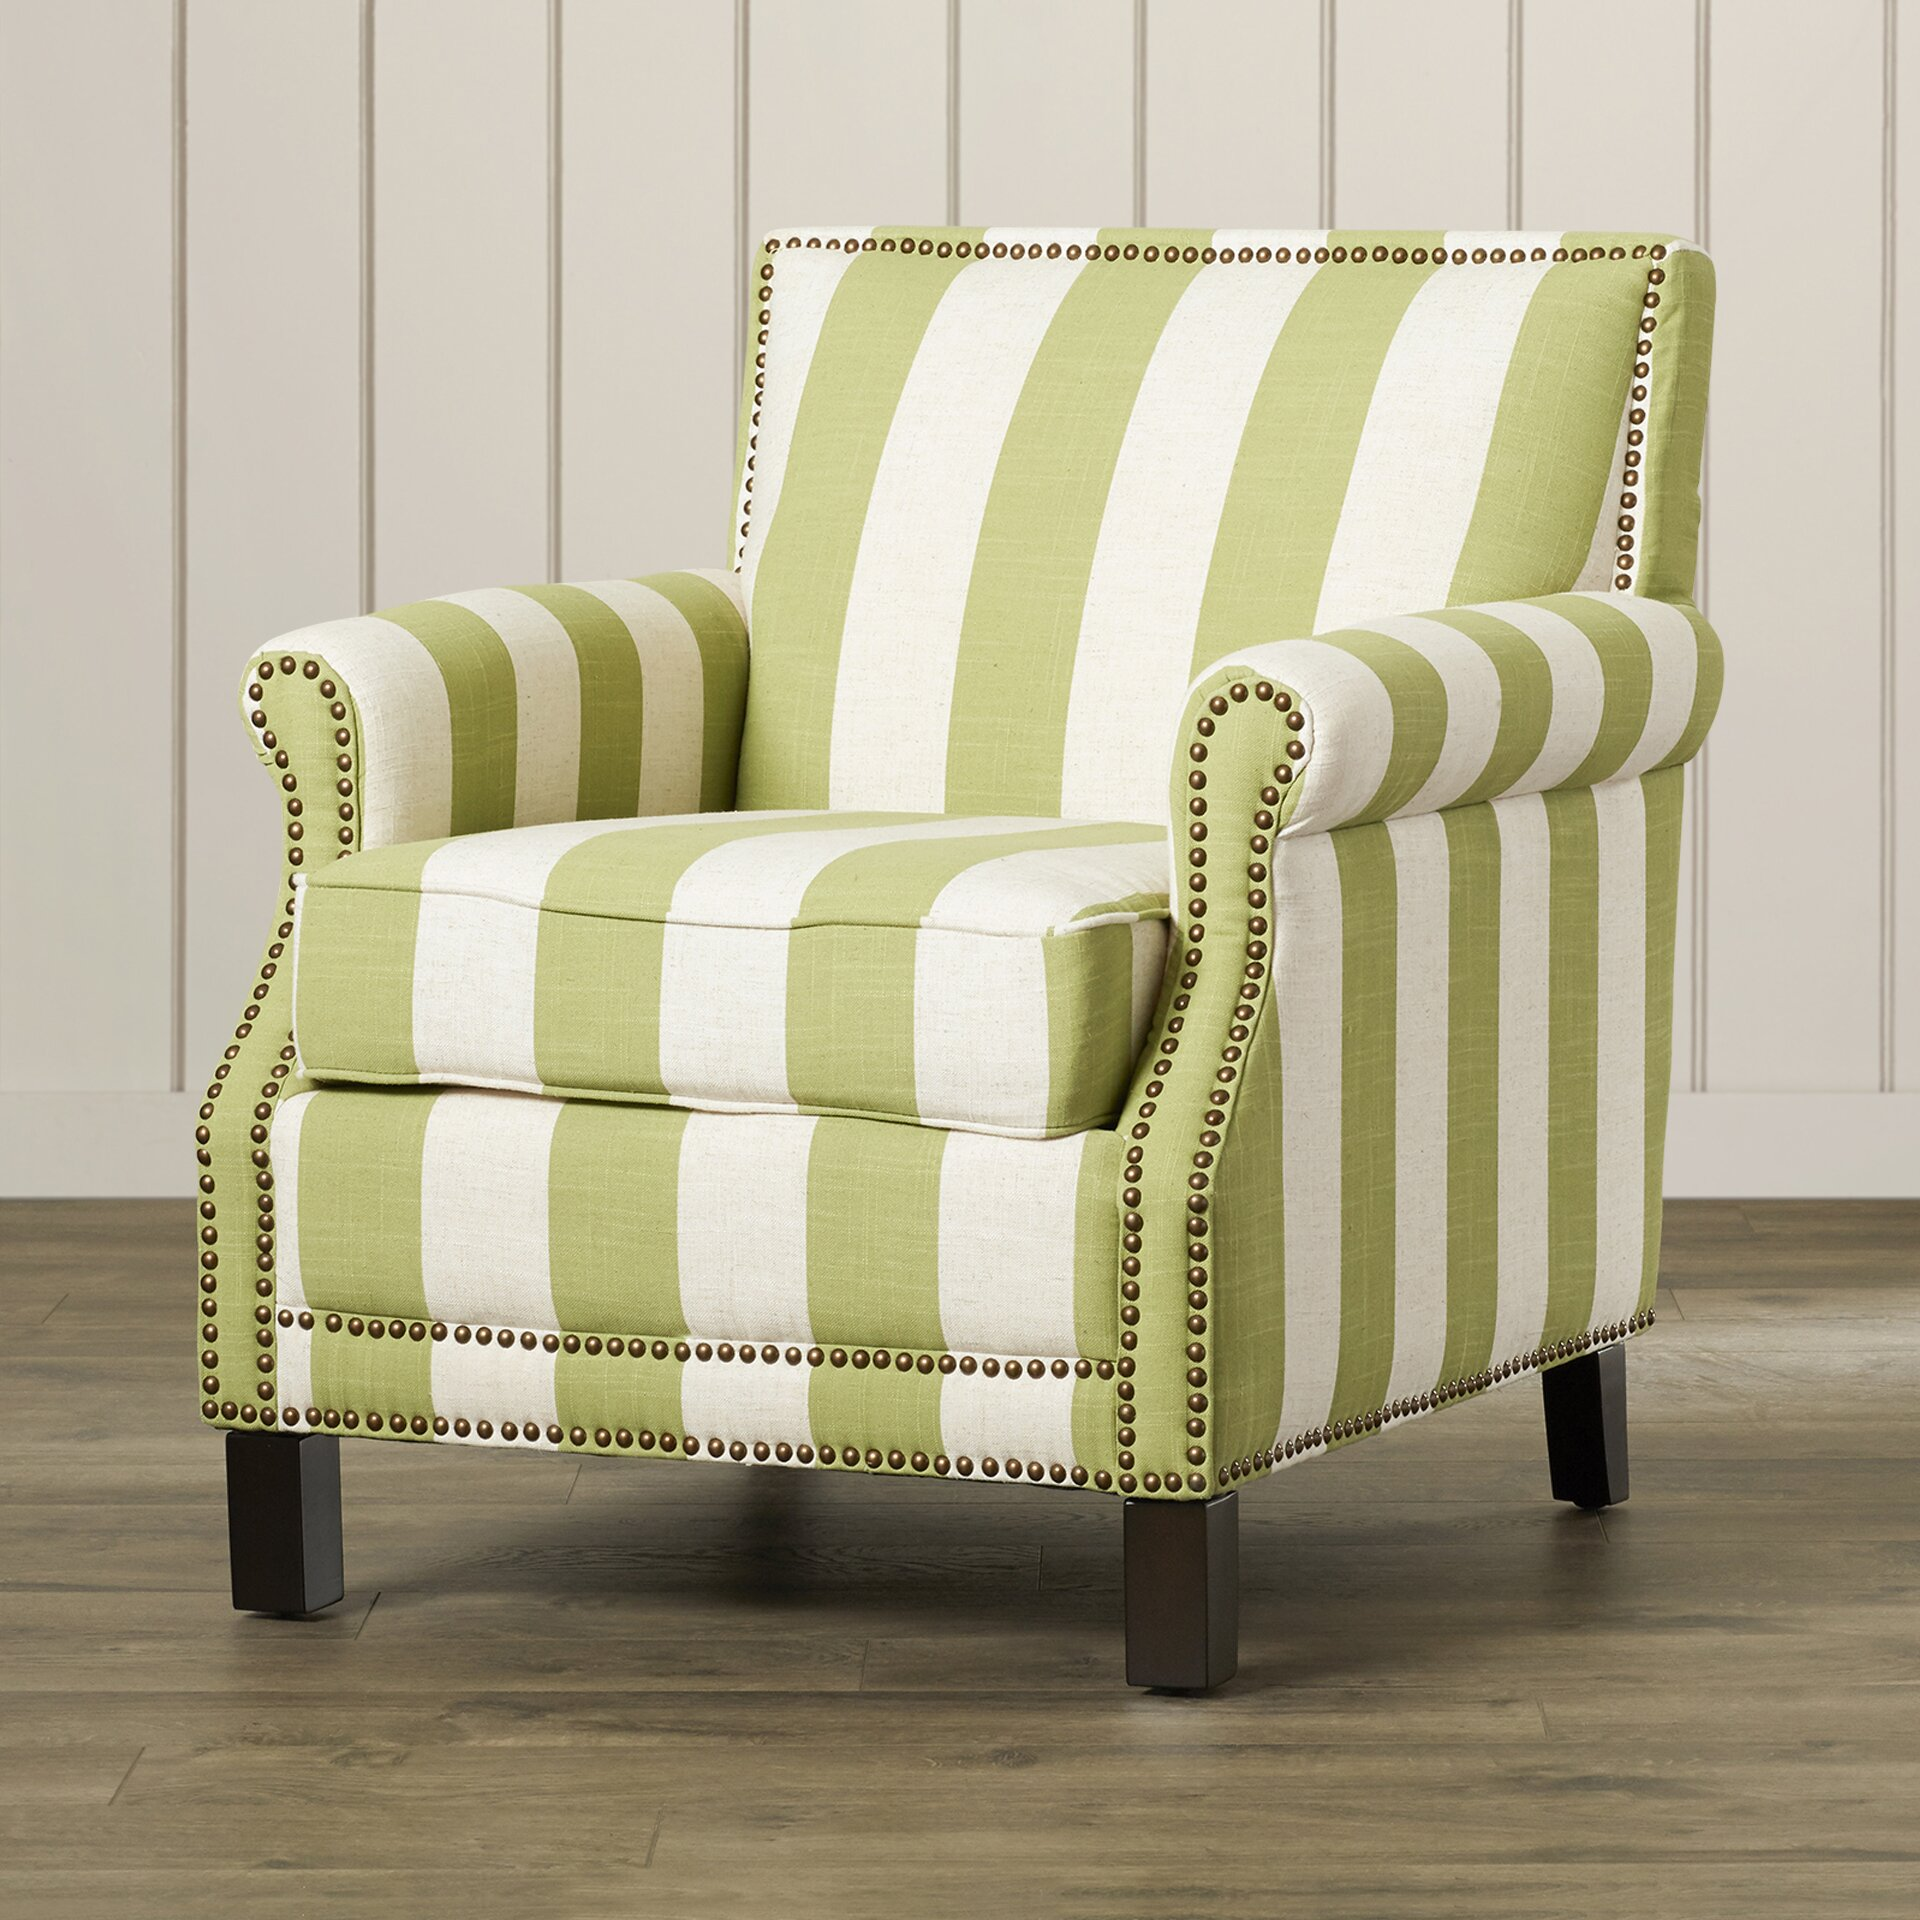 Smallgrey And Green Accent Chair: Beachcrest Home Indian Harbour Arm Chair In Green With